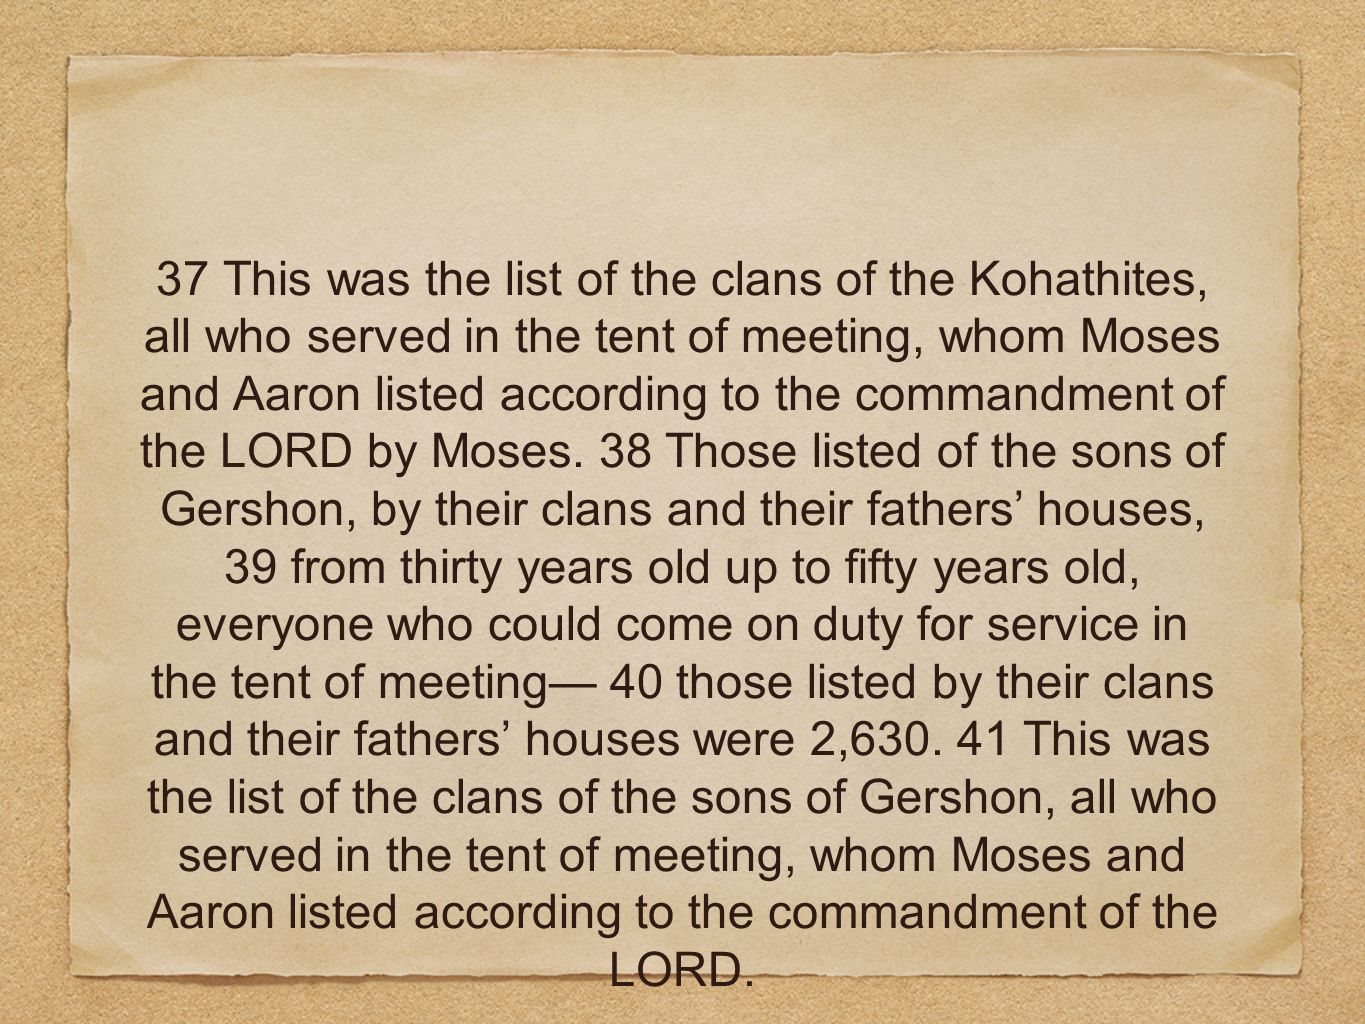 37 This was the list of the clans of the Kohathites, all who served in the tent of meeting, whom Moses and Aaron listed according to the commandment of the LORD by Moses.